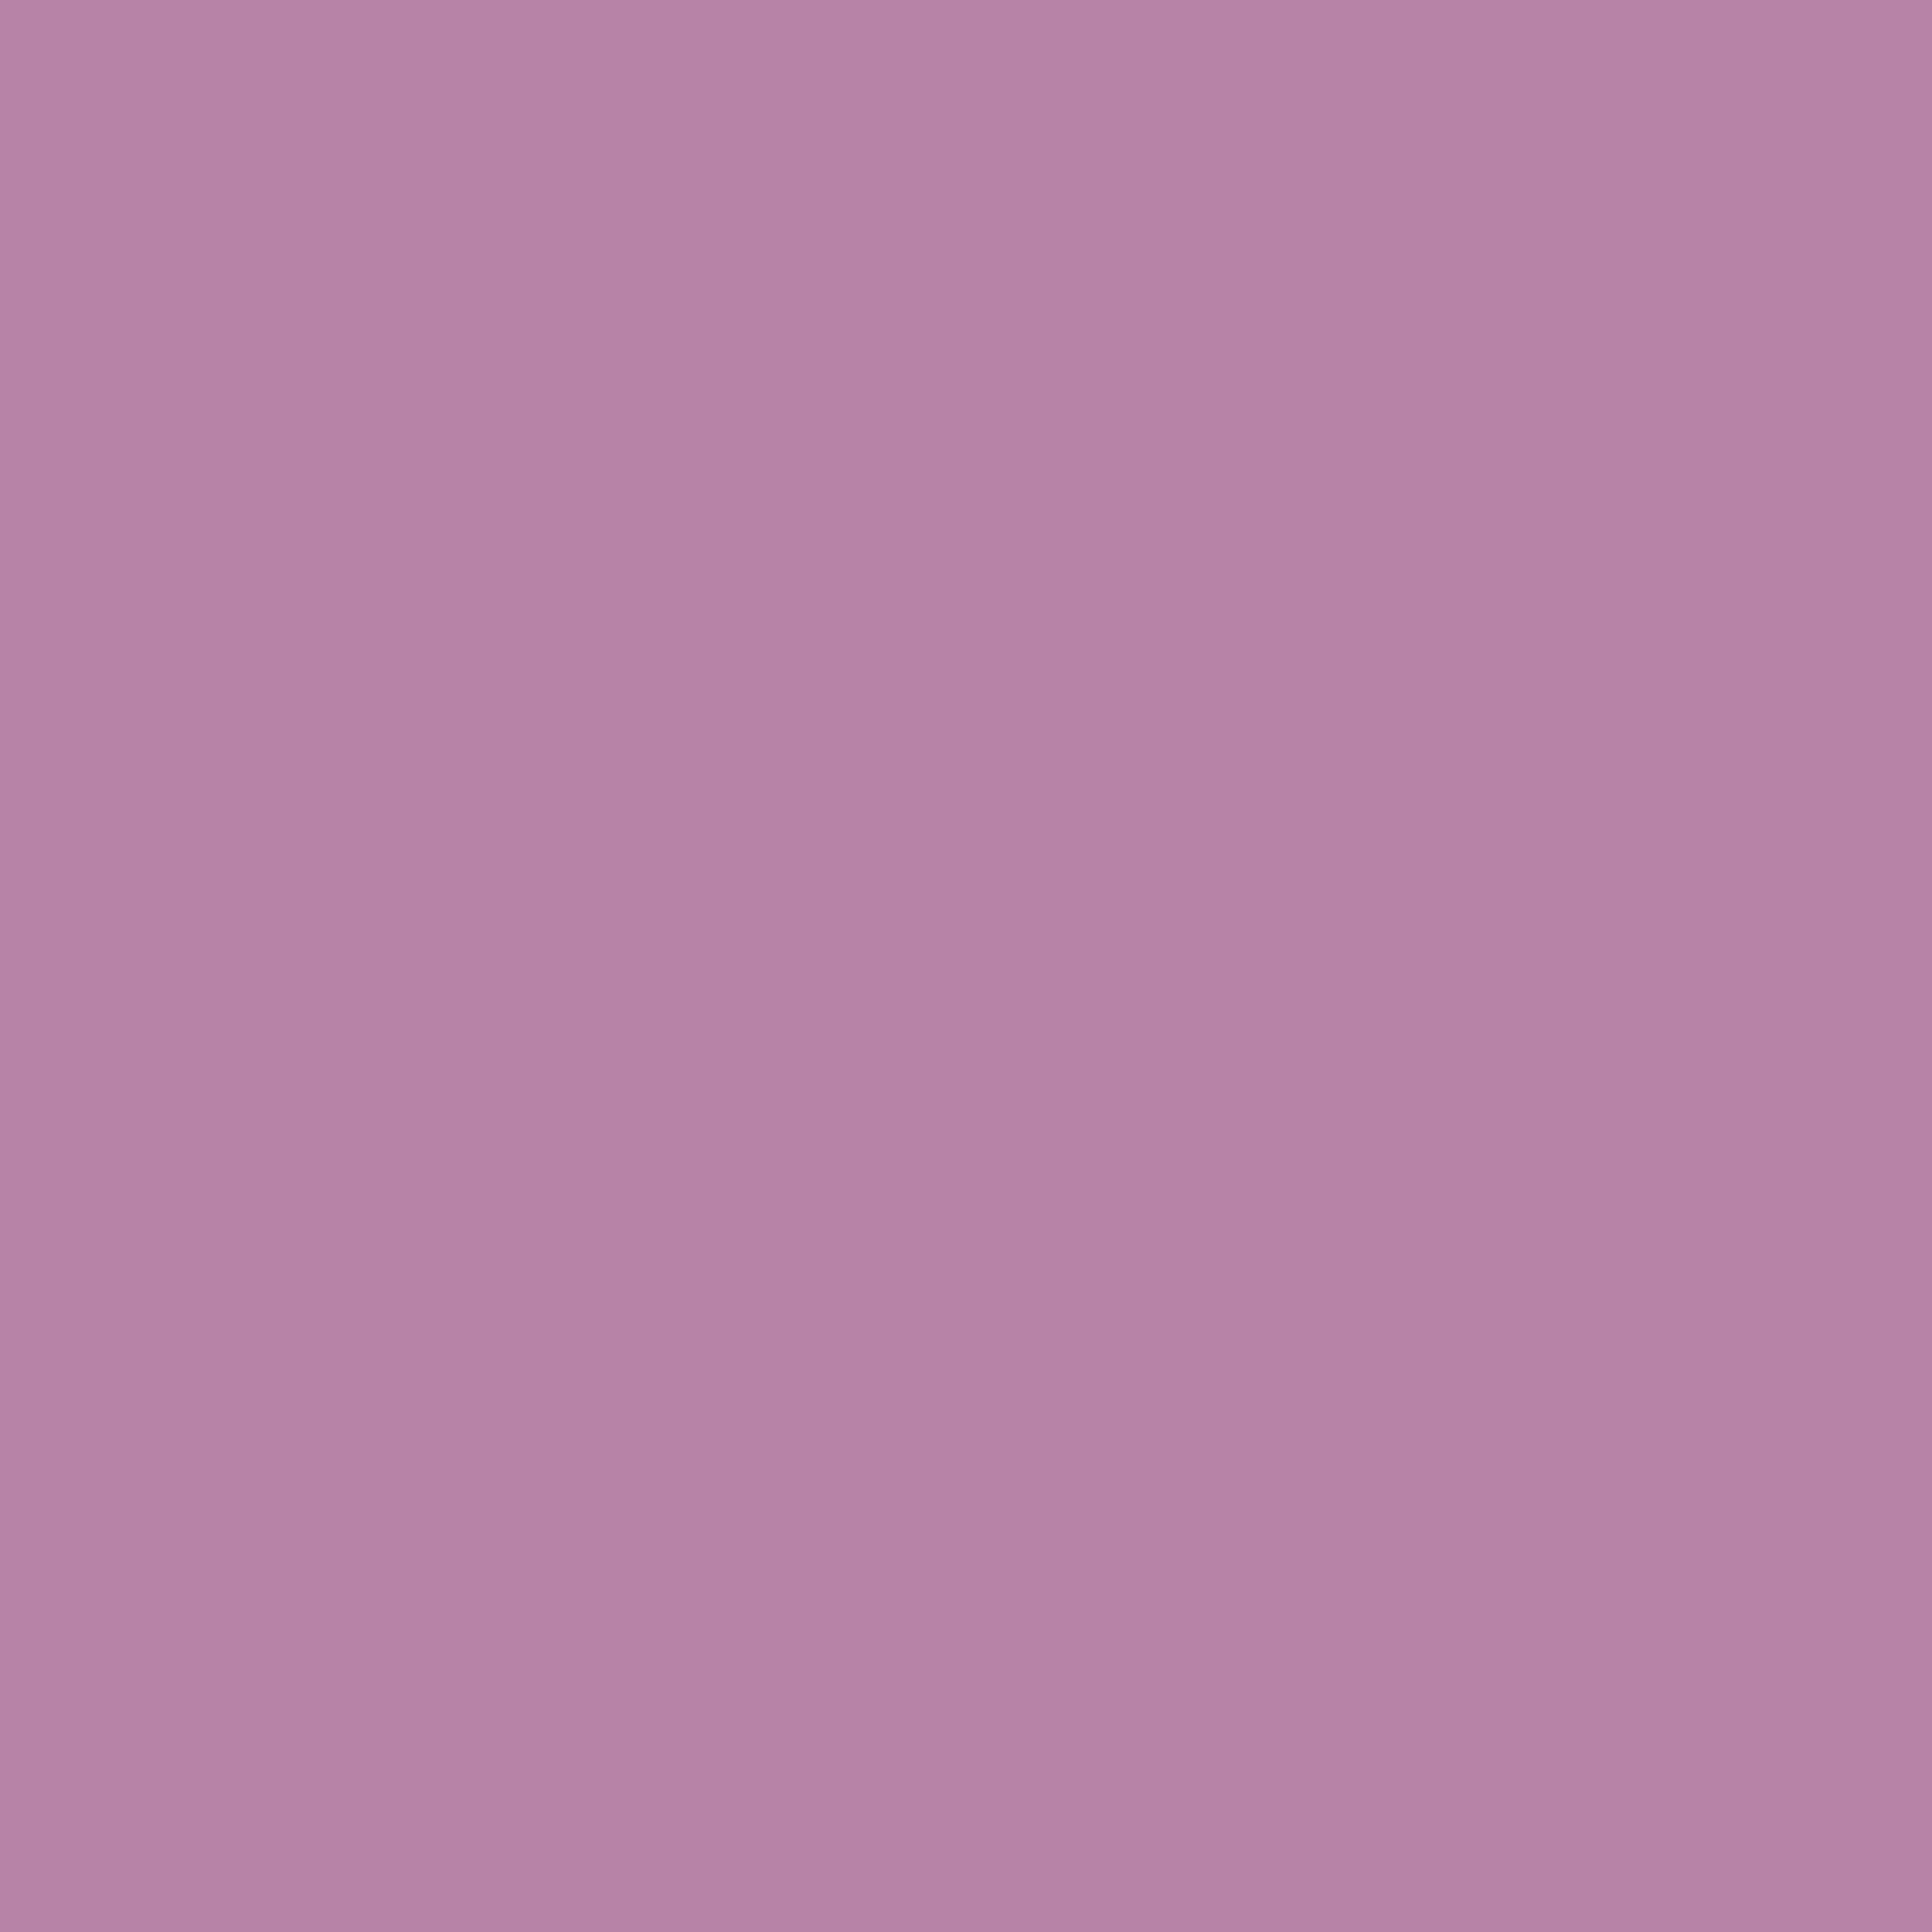 3600x3600 Opera Mauve Solid Color Background